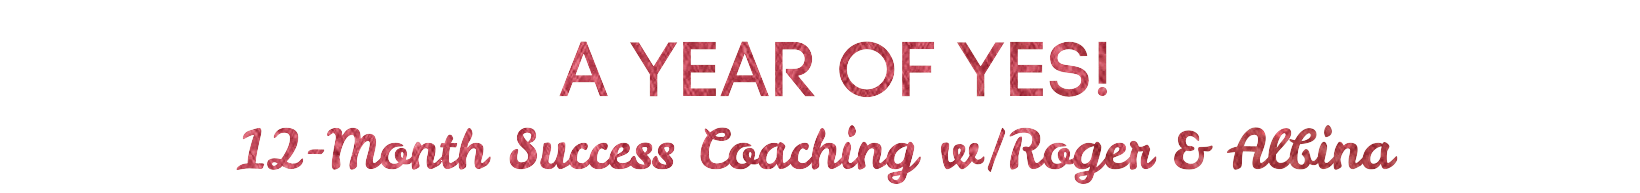 A Year of Yes: 12 Month Success Coaching with Roger & Albina Rippy